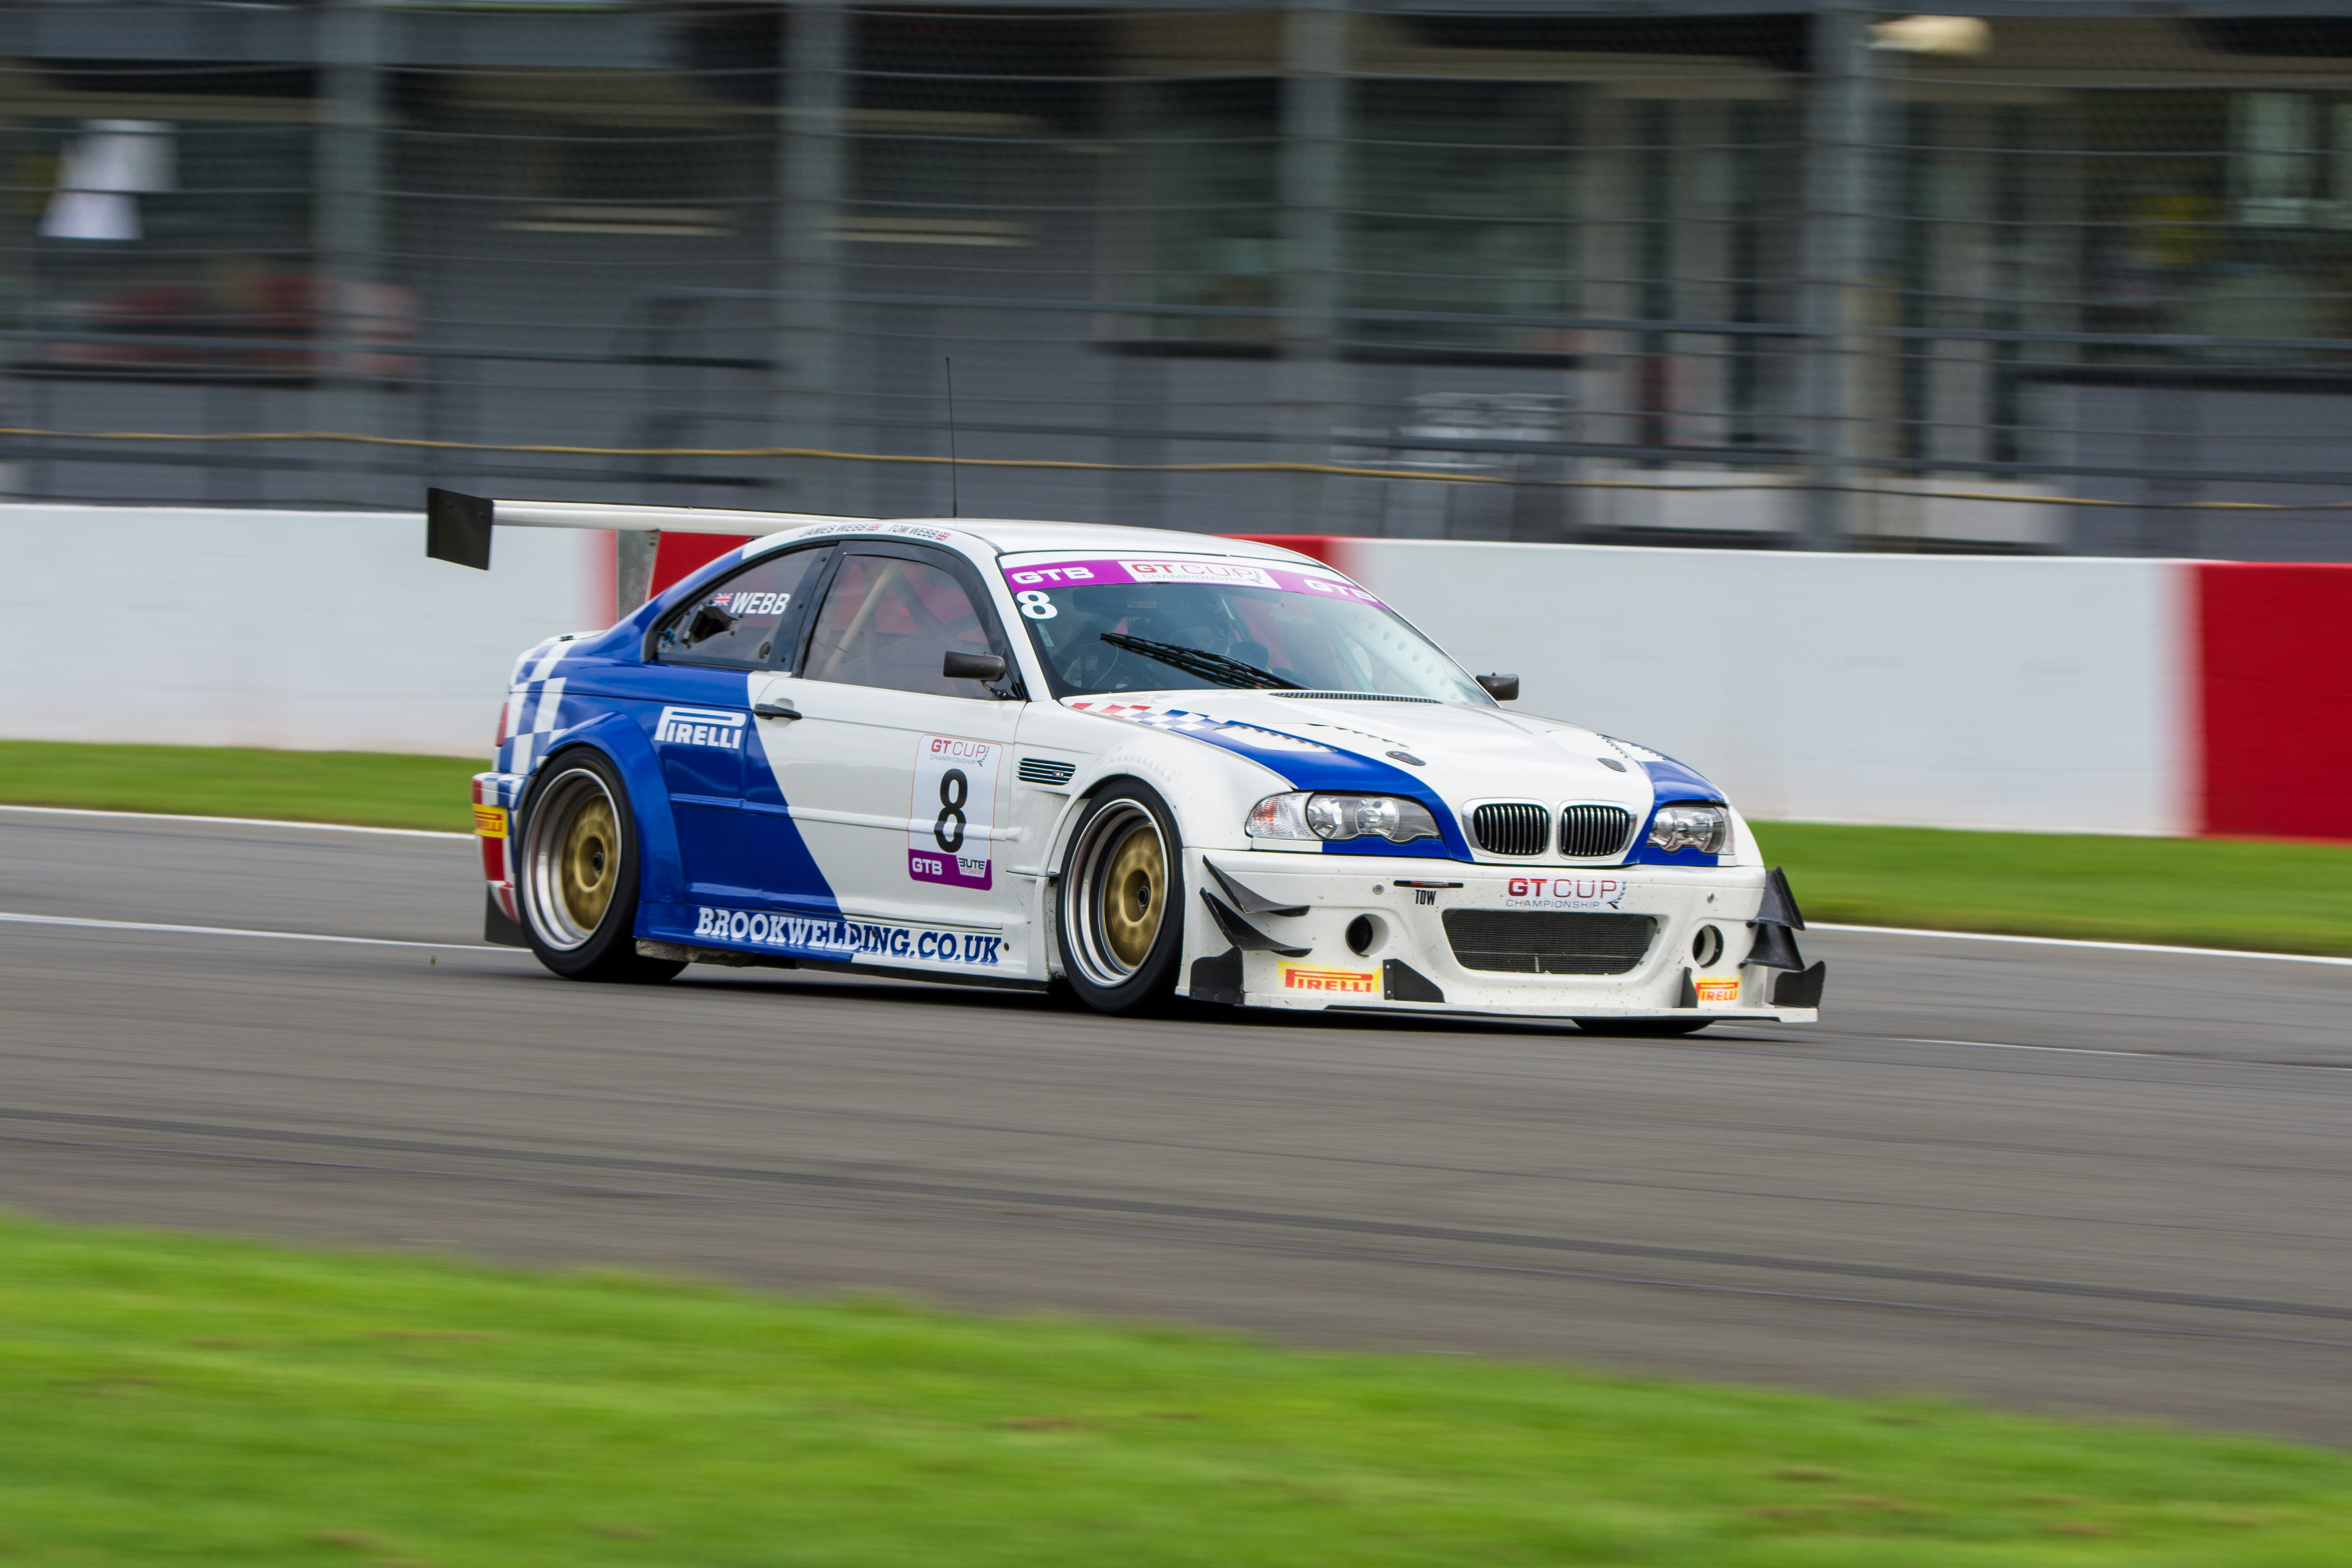 Very fast and reliable BMW E46 3.2L S54 race car for sale. Fantastic handling and driver friendly